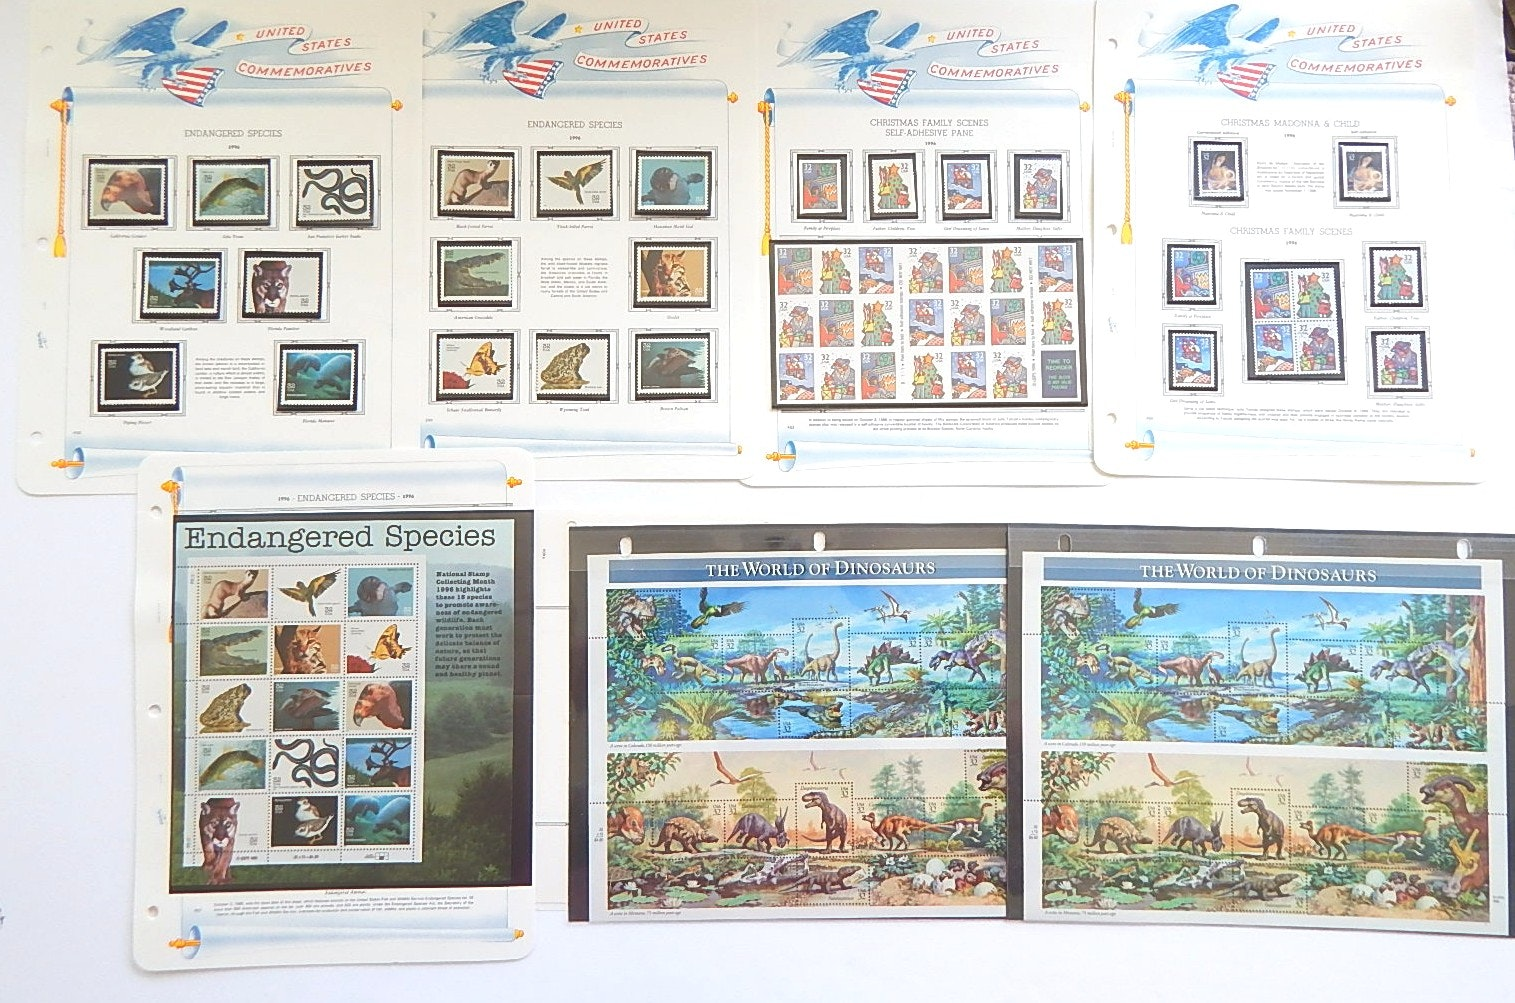 United States Commemorative Stamps with Dinosaurs, Endangered Species, Christmas